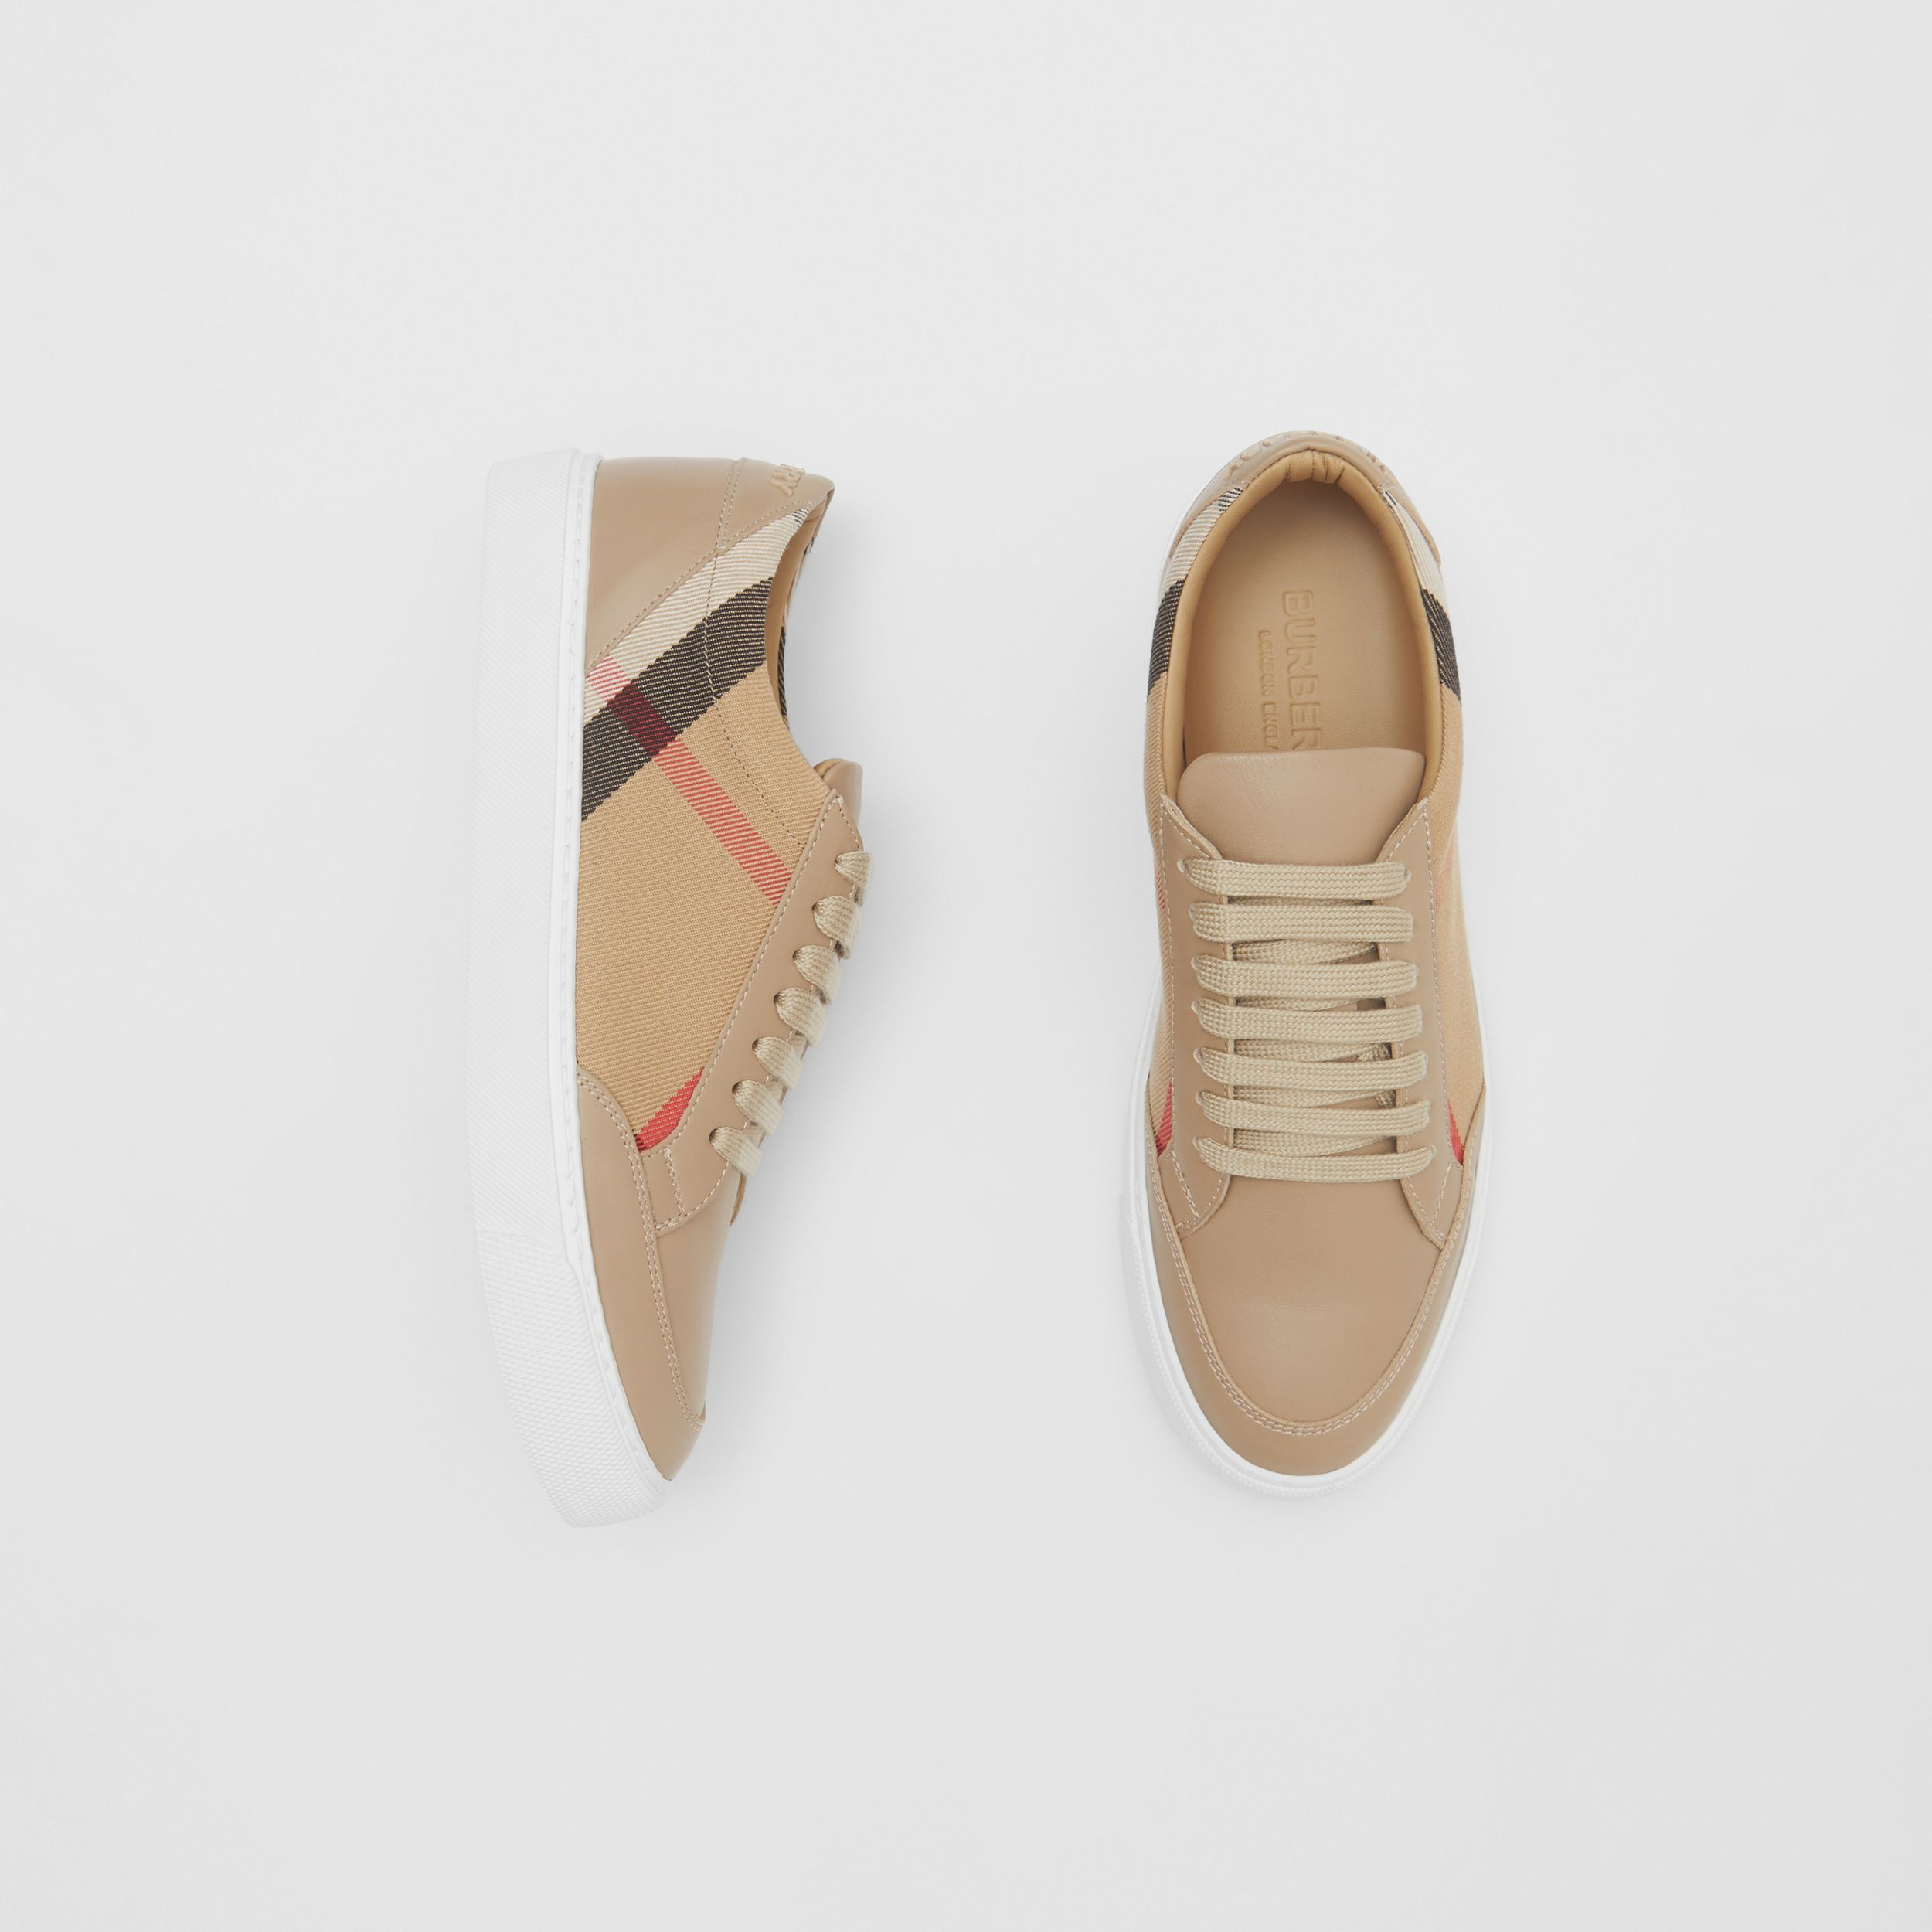 House Check and Leather Sneakers in Tan - Women | Burberry Australia - 1